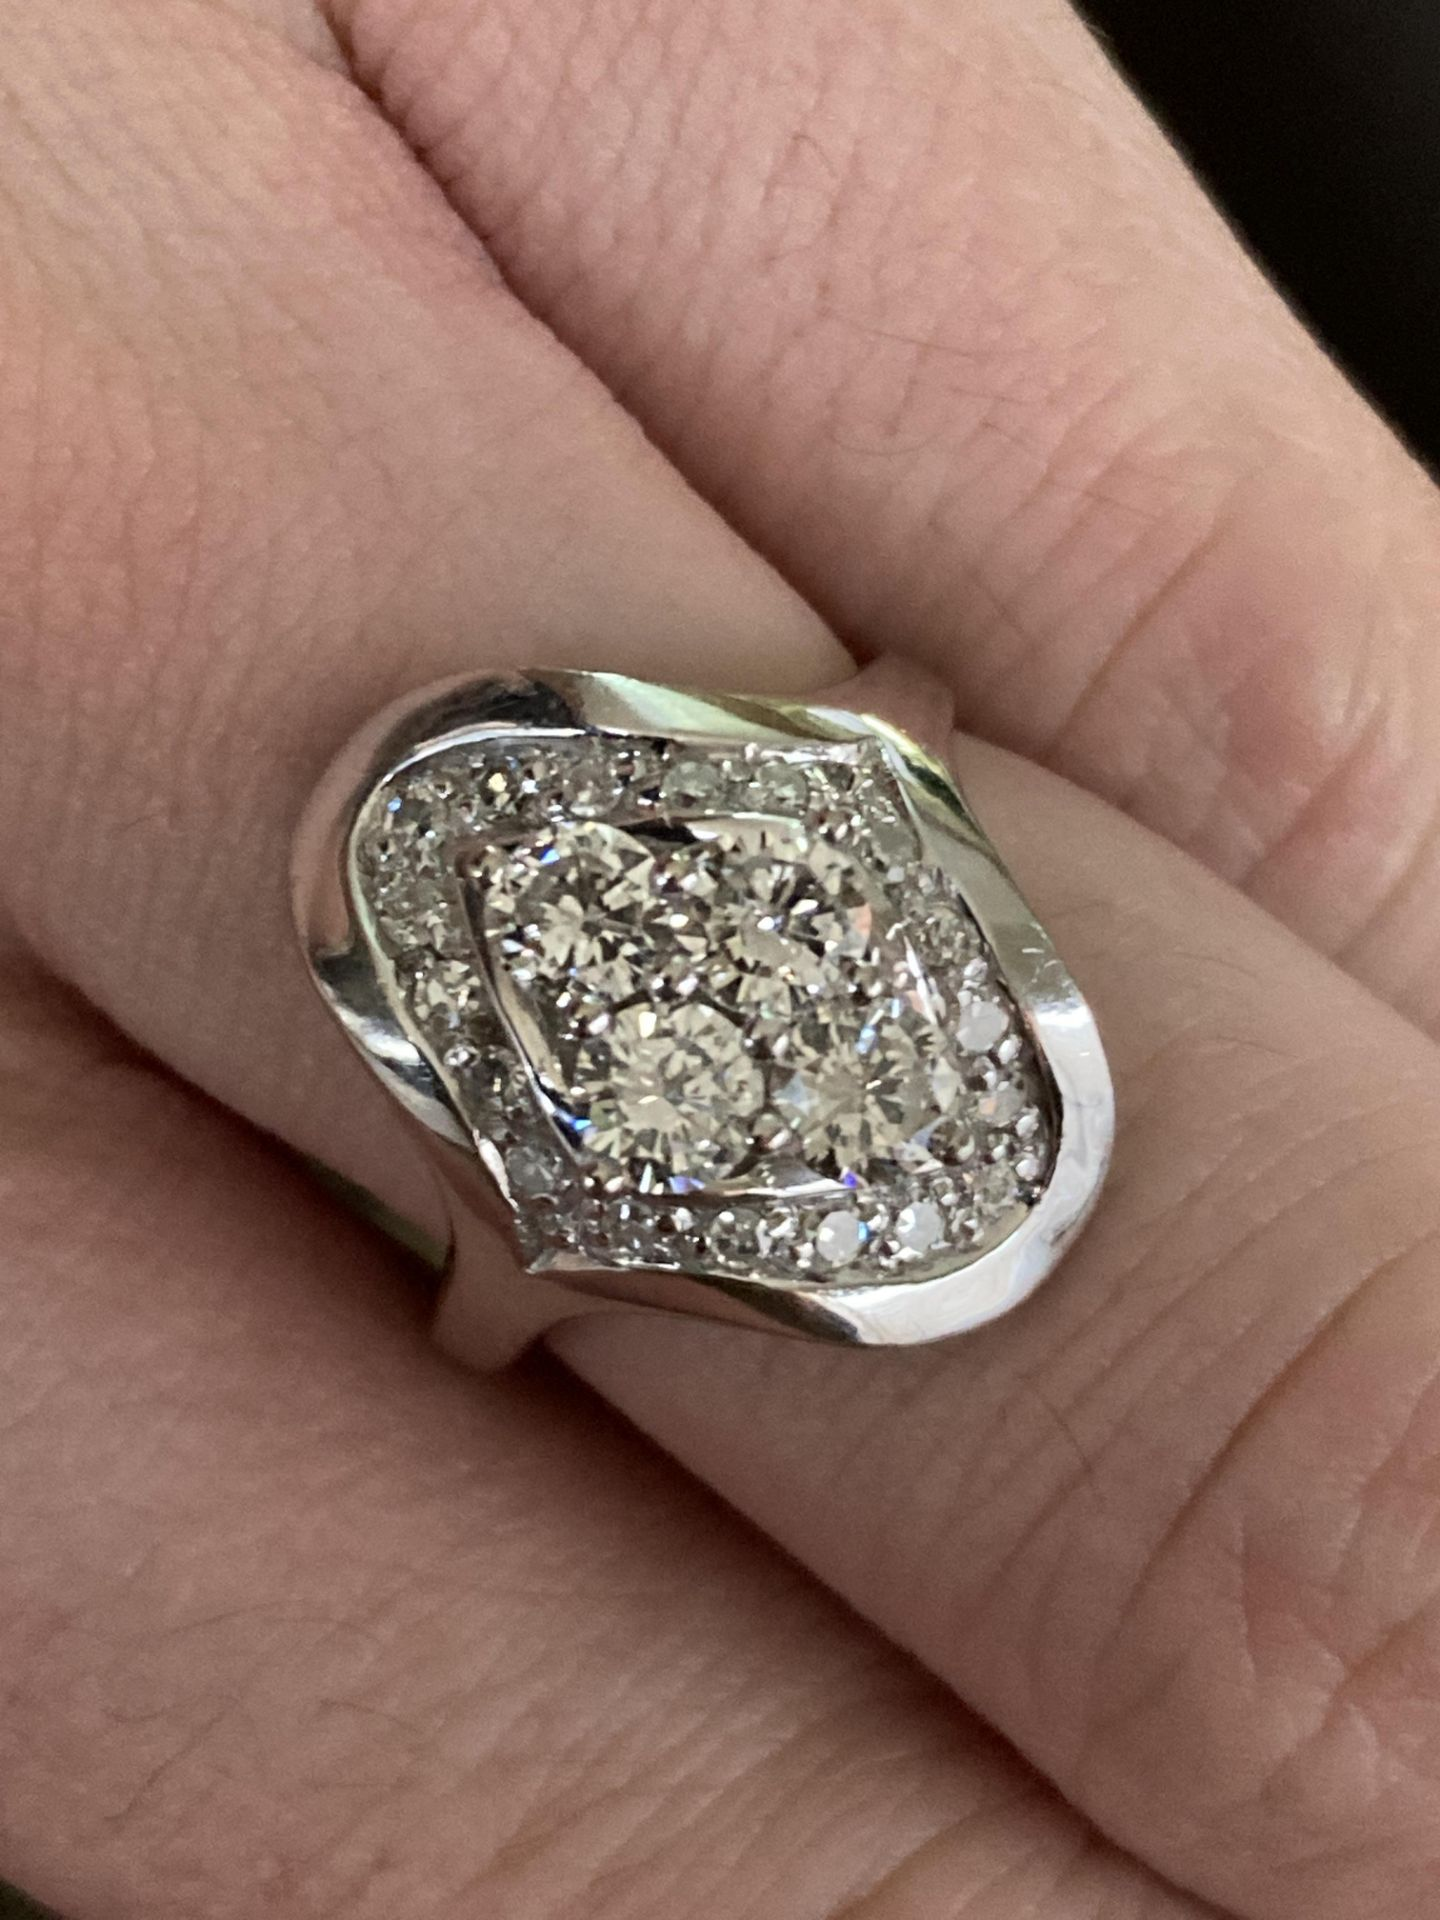 1CT DIAMOND RING IN 14CT WHITE GOLD - SIZE: O 1/2 / WEIGHT: 7.4G - Image 5 of 5